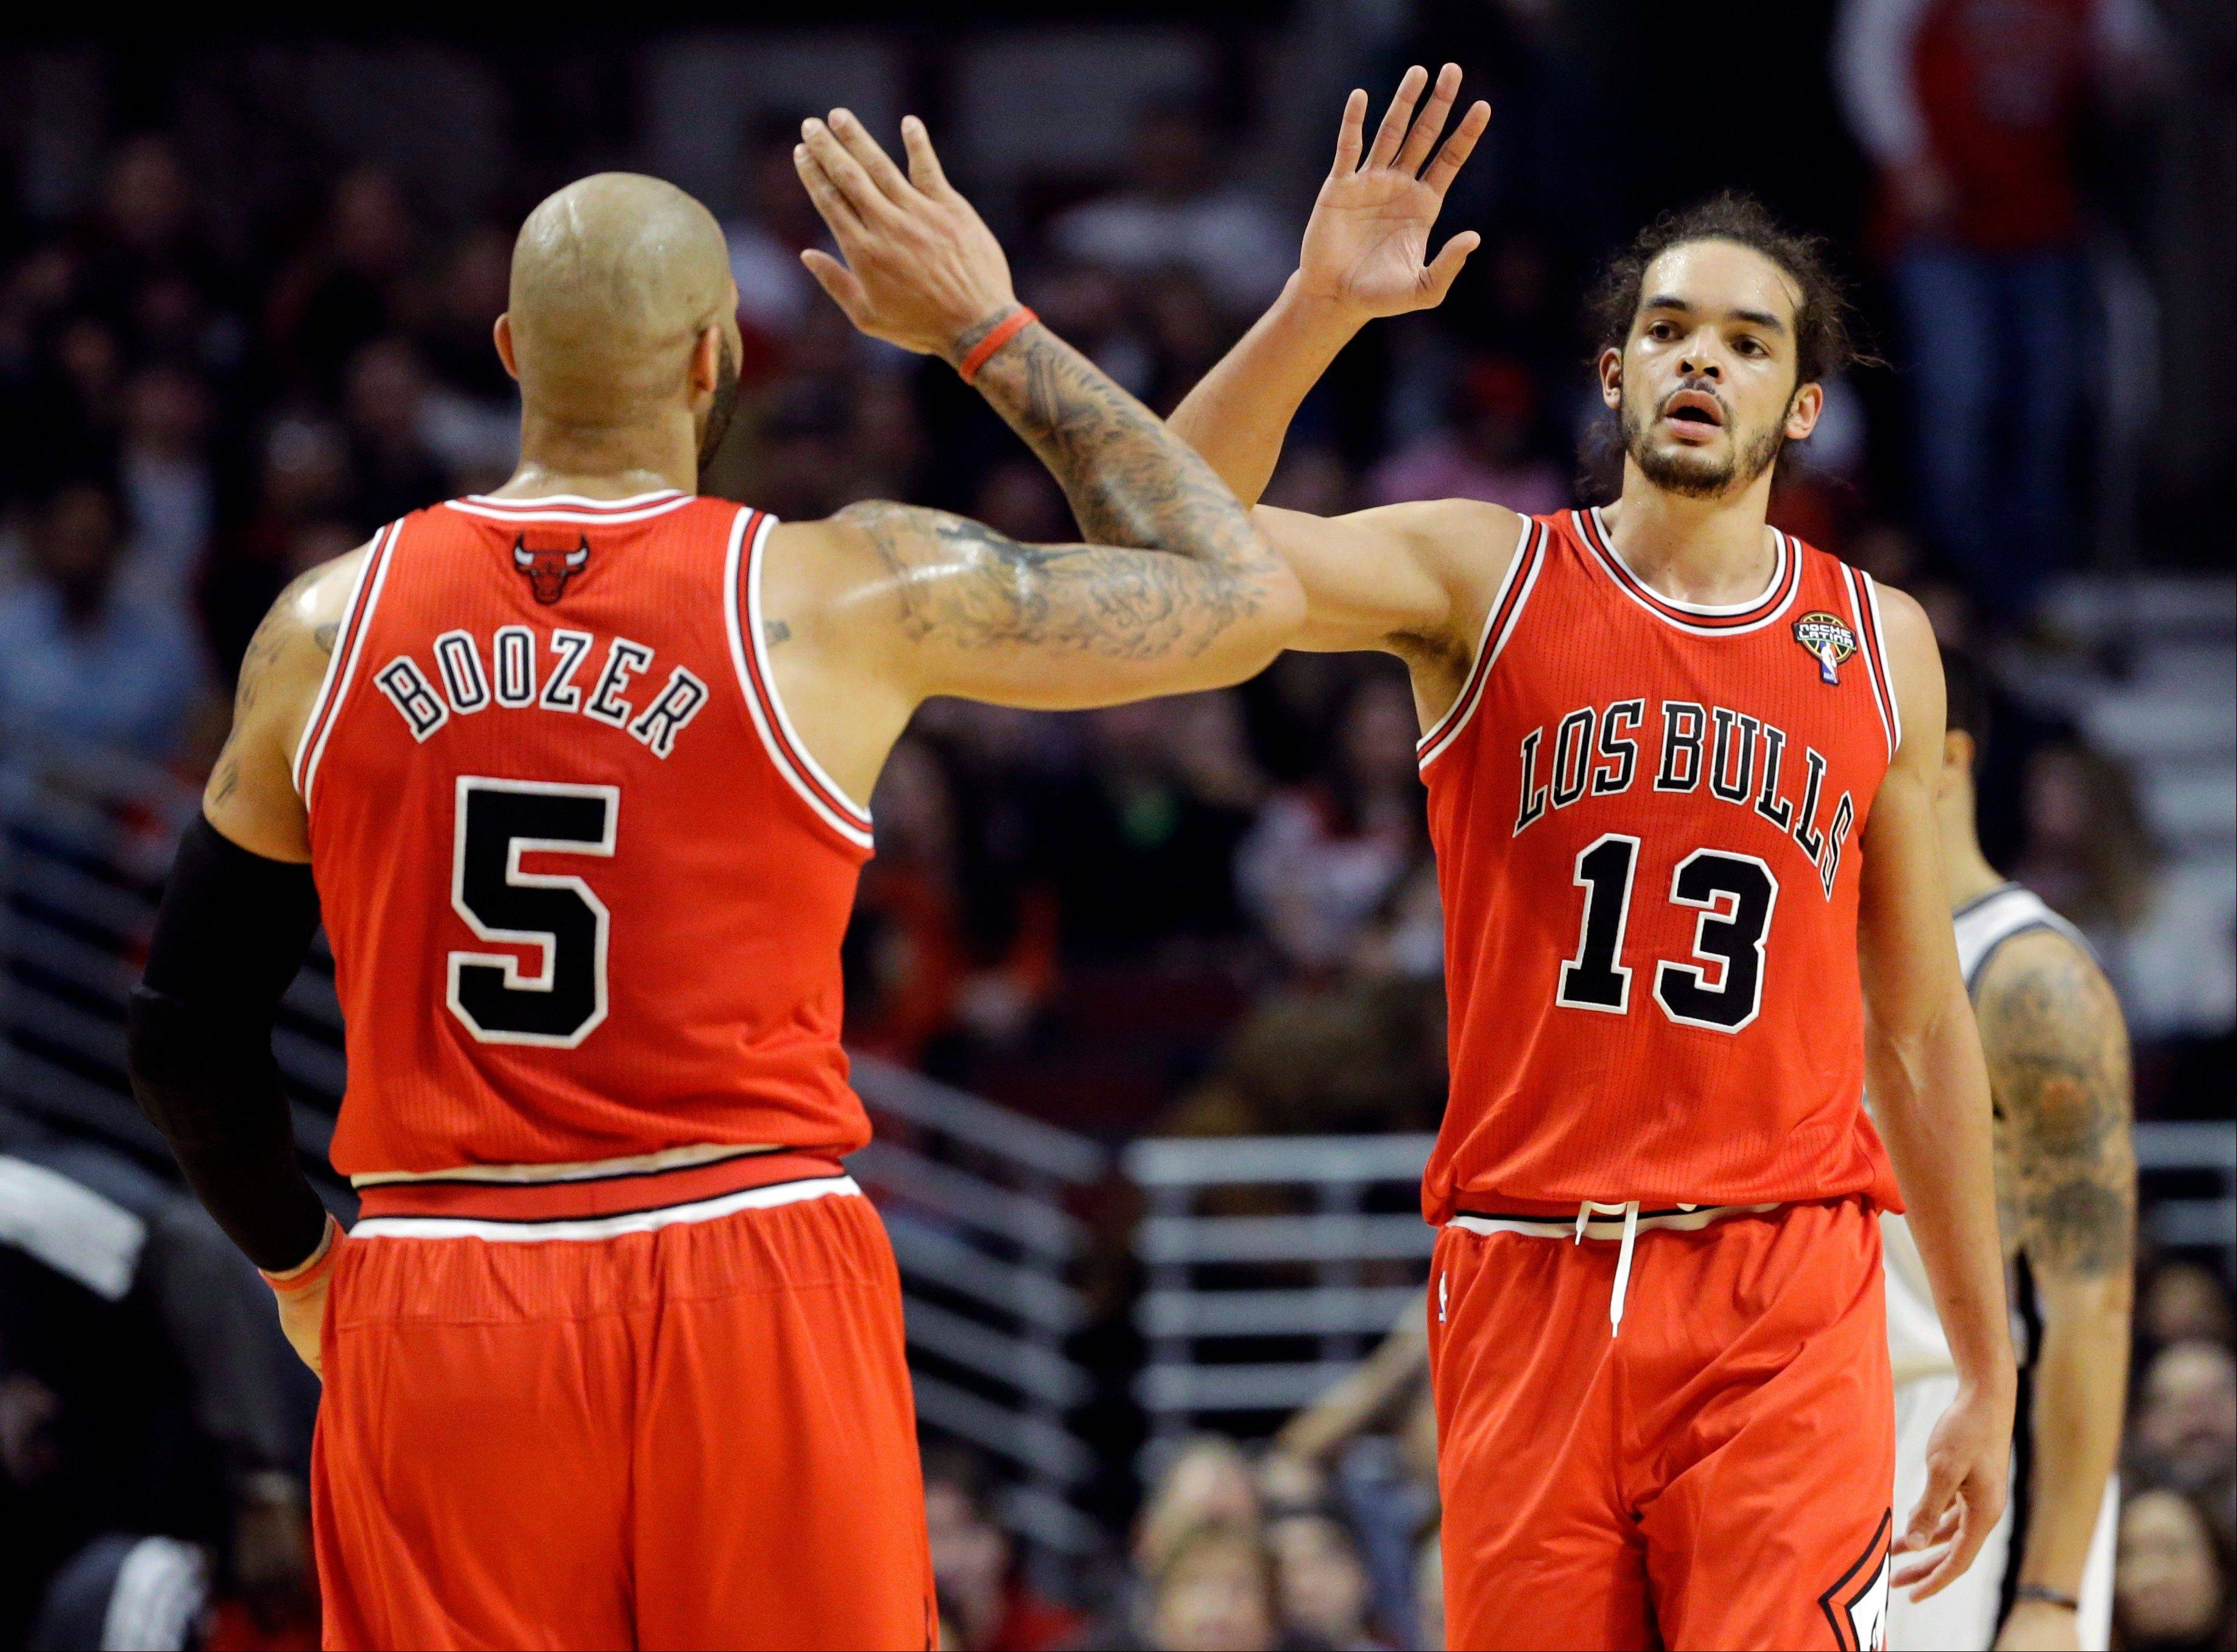 Joakim Noah, right, celebrates with forward Carlos Boozer after Brooklyn Nets forward Kris Humphries fouled during the first half of an NBA basketball game in Chicago on Saturday, March 2, 2013.